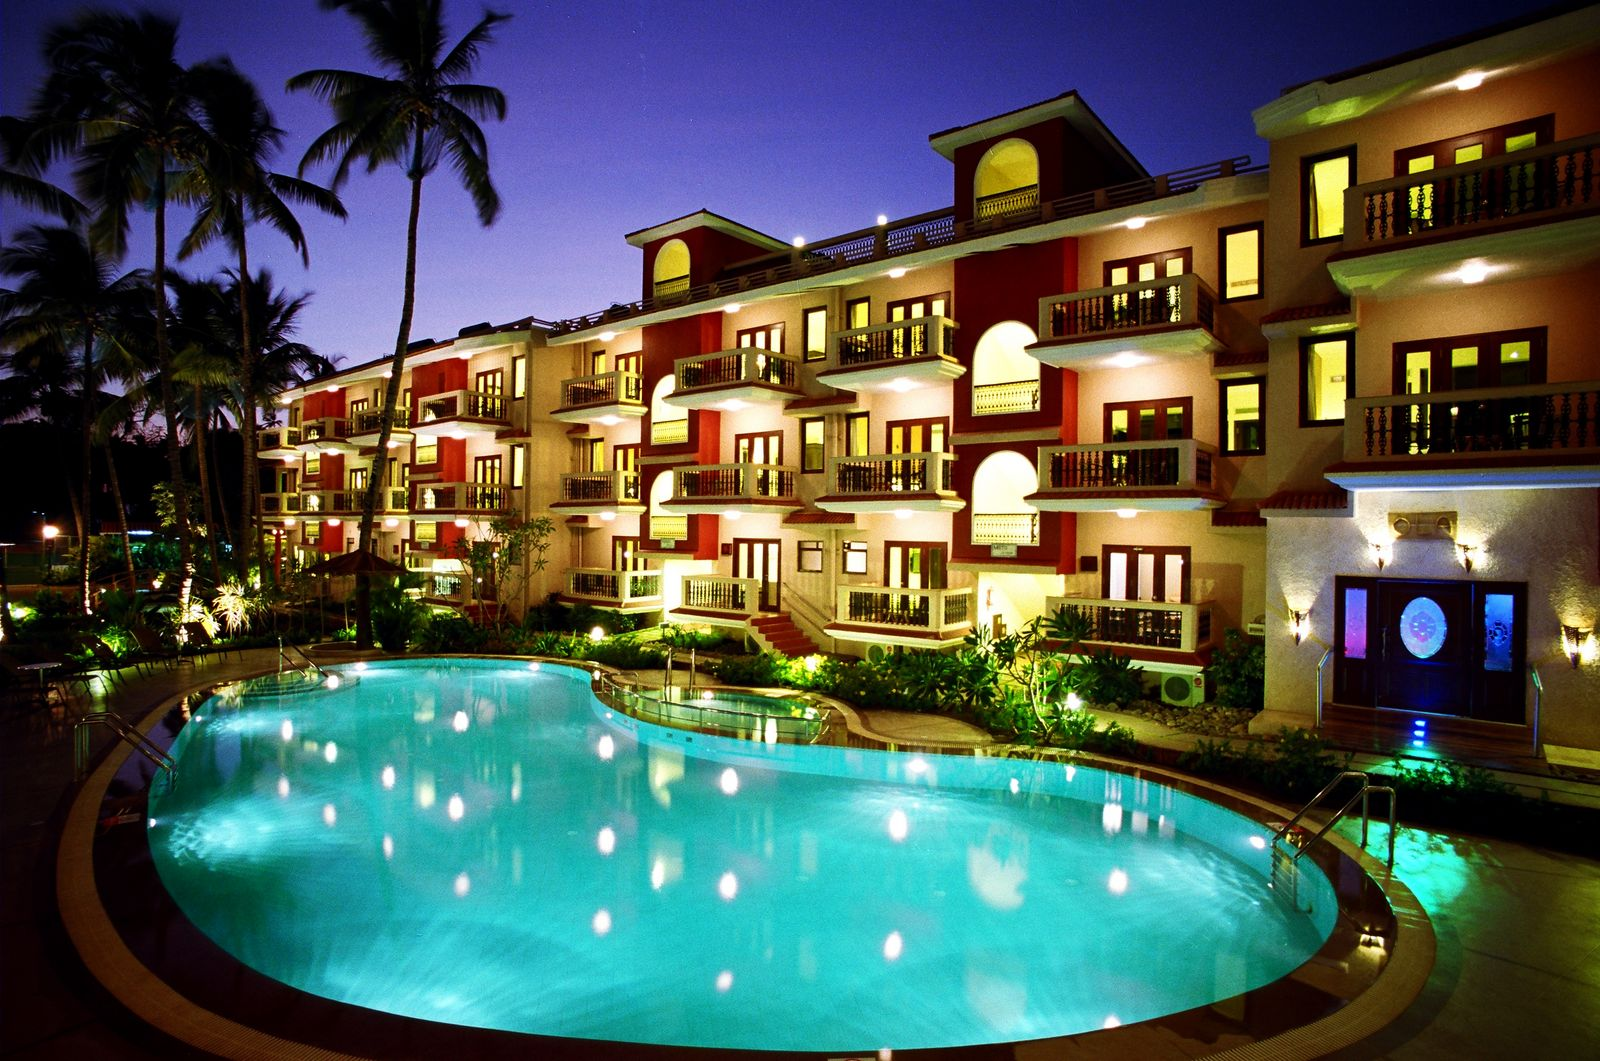 Hotel having casino in goa